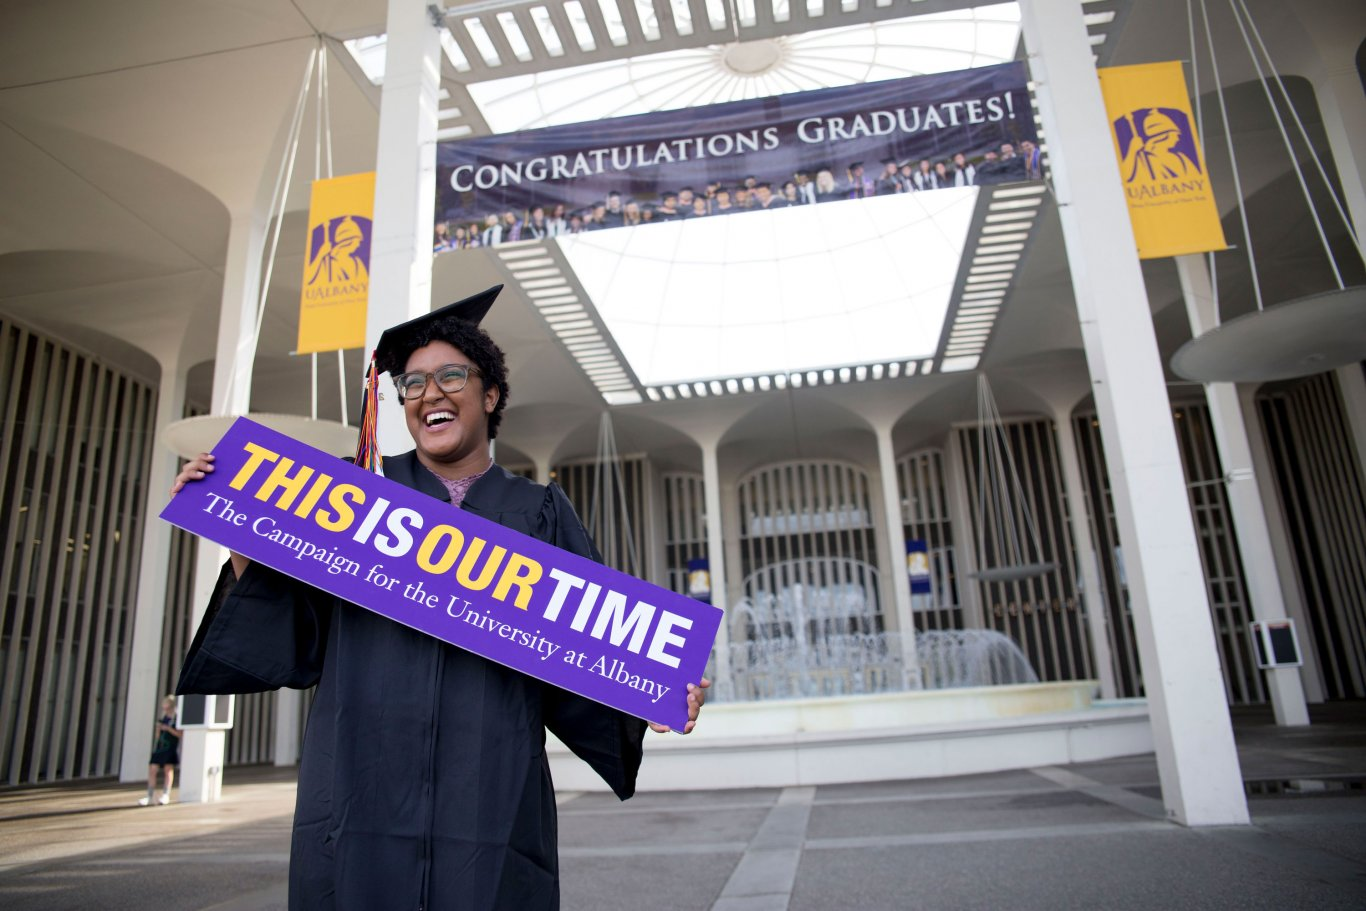 A UAlbany graduate celebrating Commencement poses on the Podium.